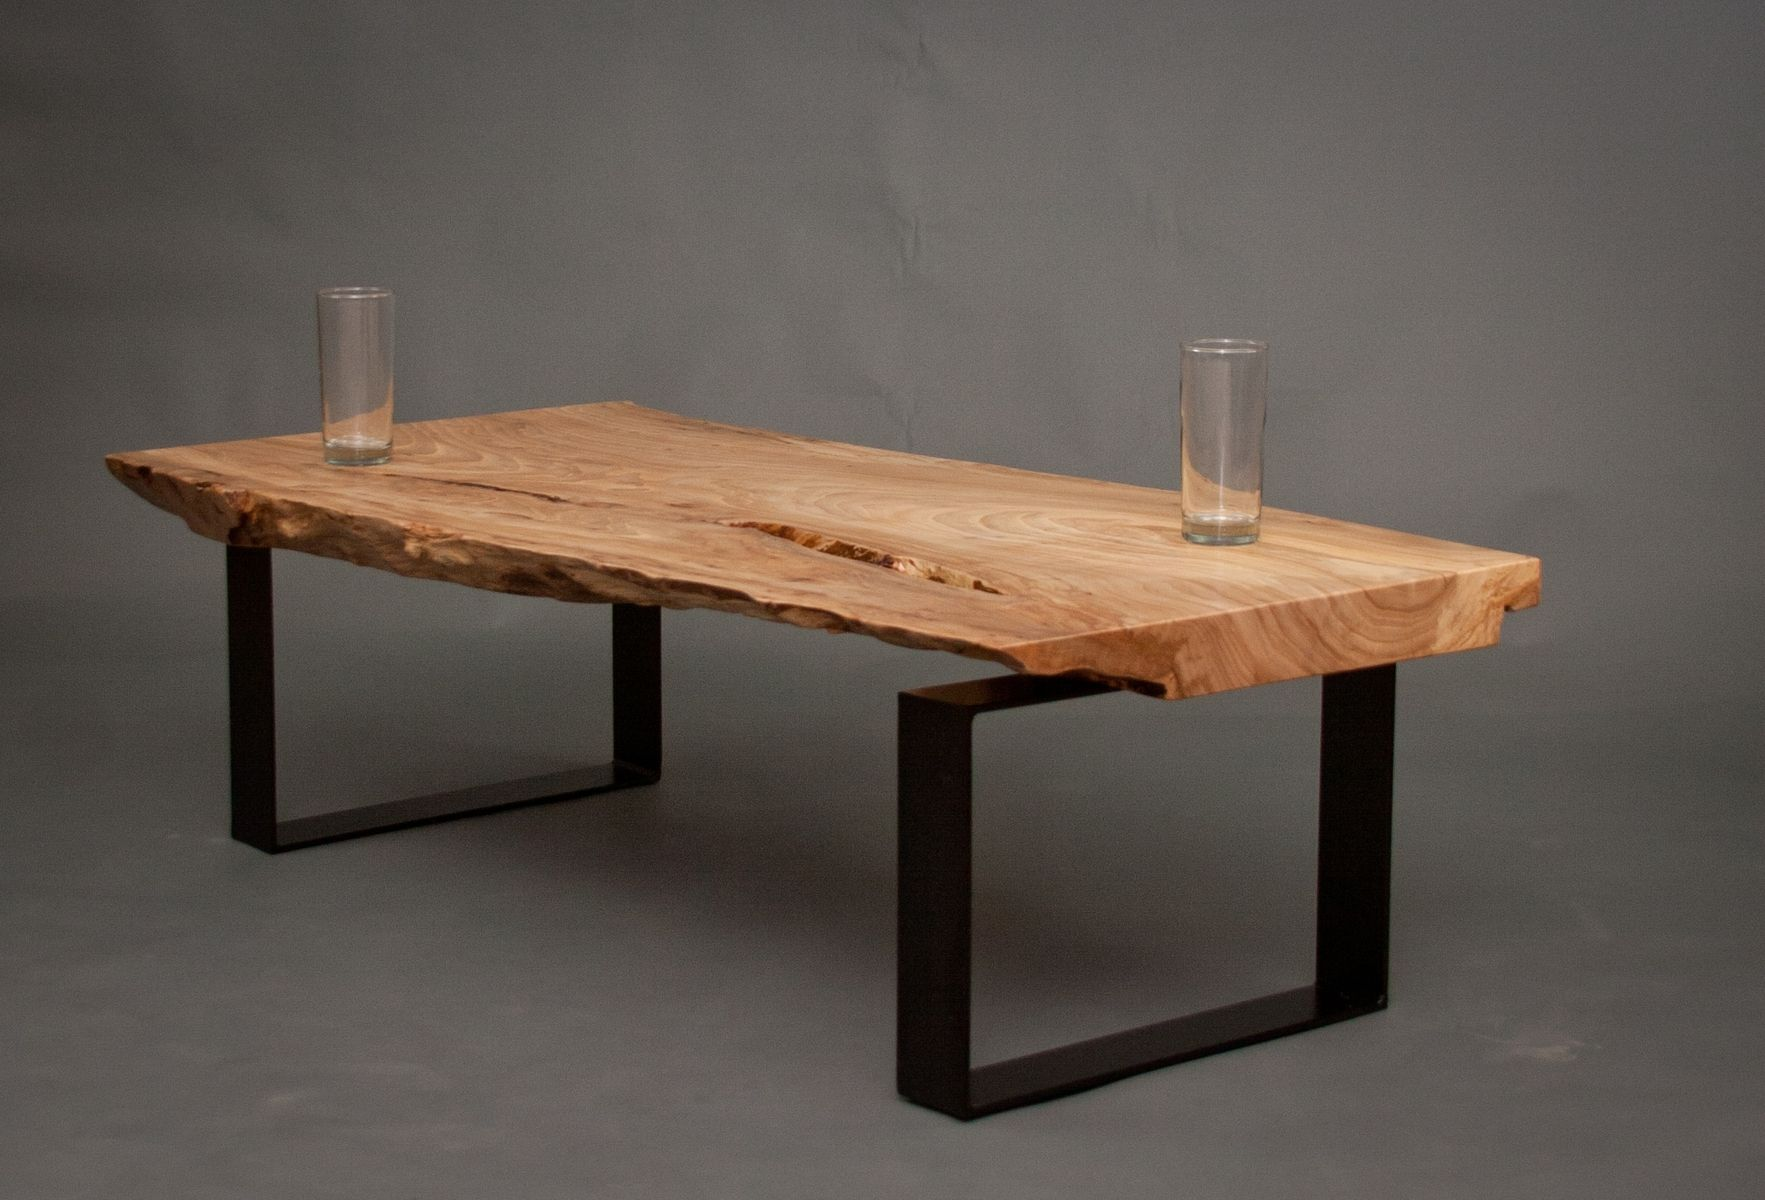 Ellington Reclaimed Elm Wood Coffee Table By Blake Paine